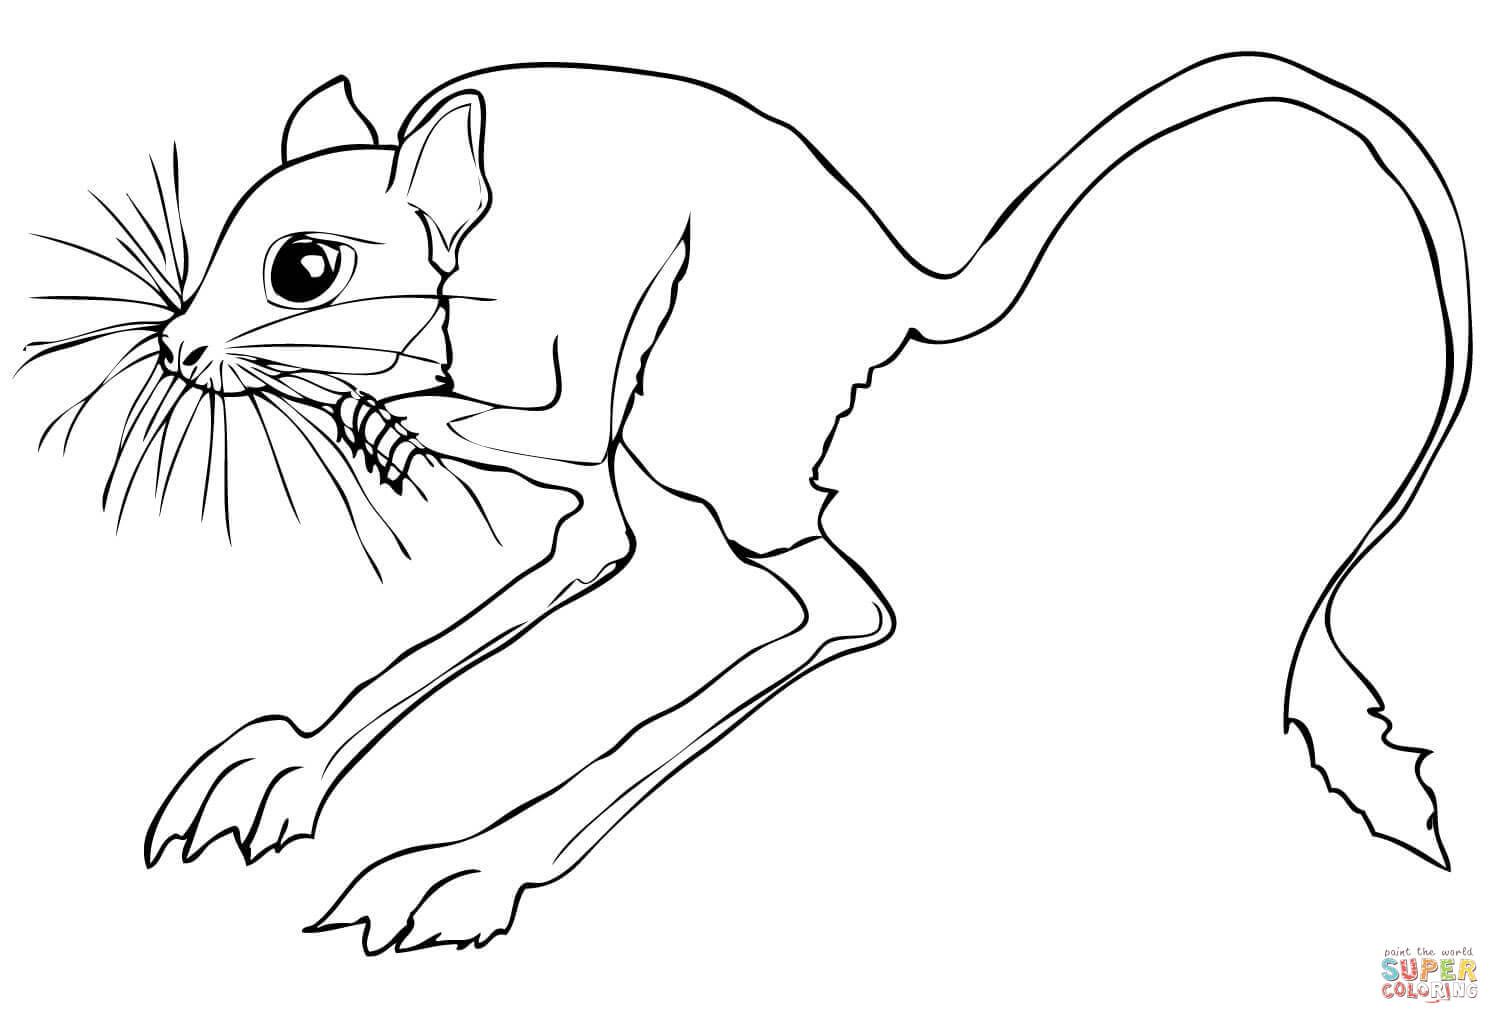 Desert Animals Coloring Pages | Desert Rodent Jerboa Coloring Page |  SuperColoring.com